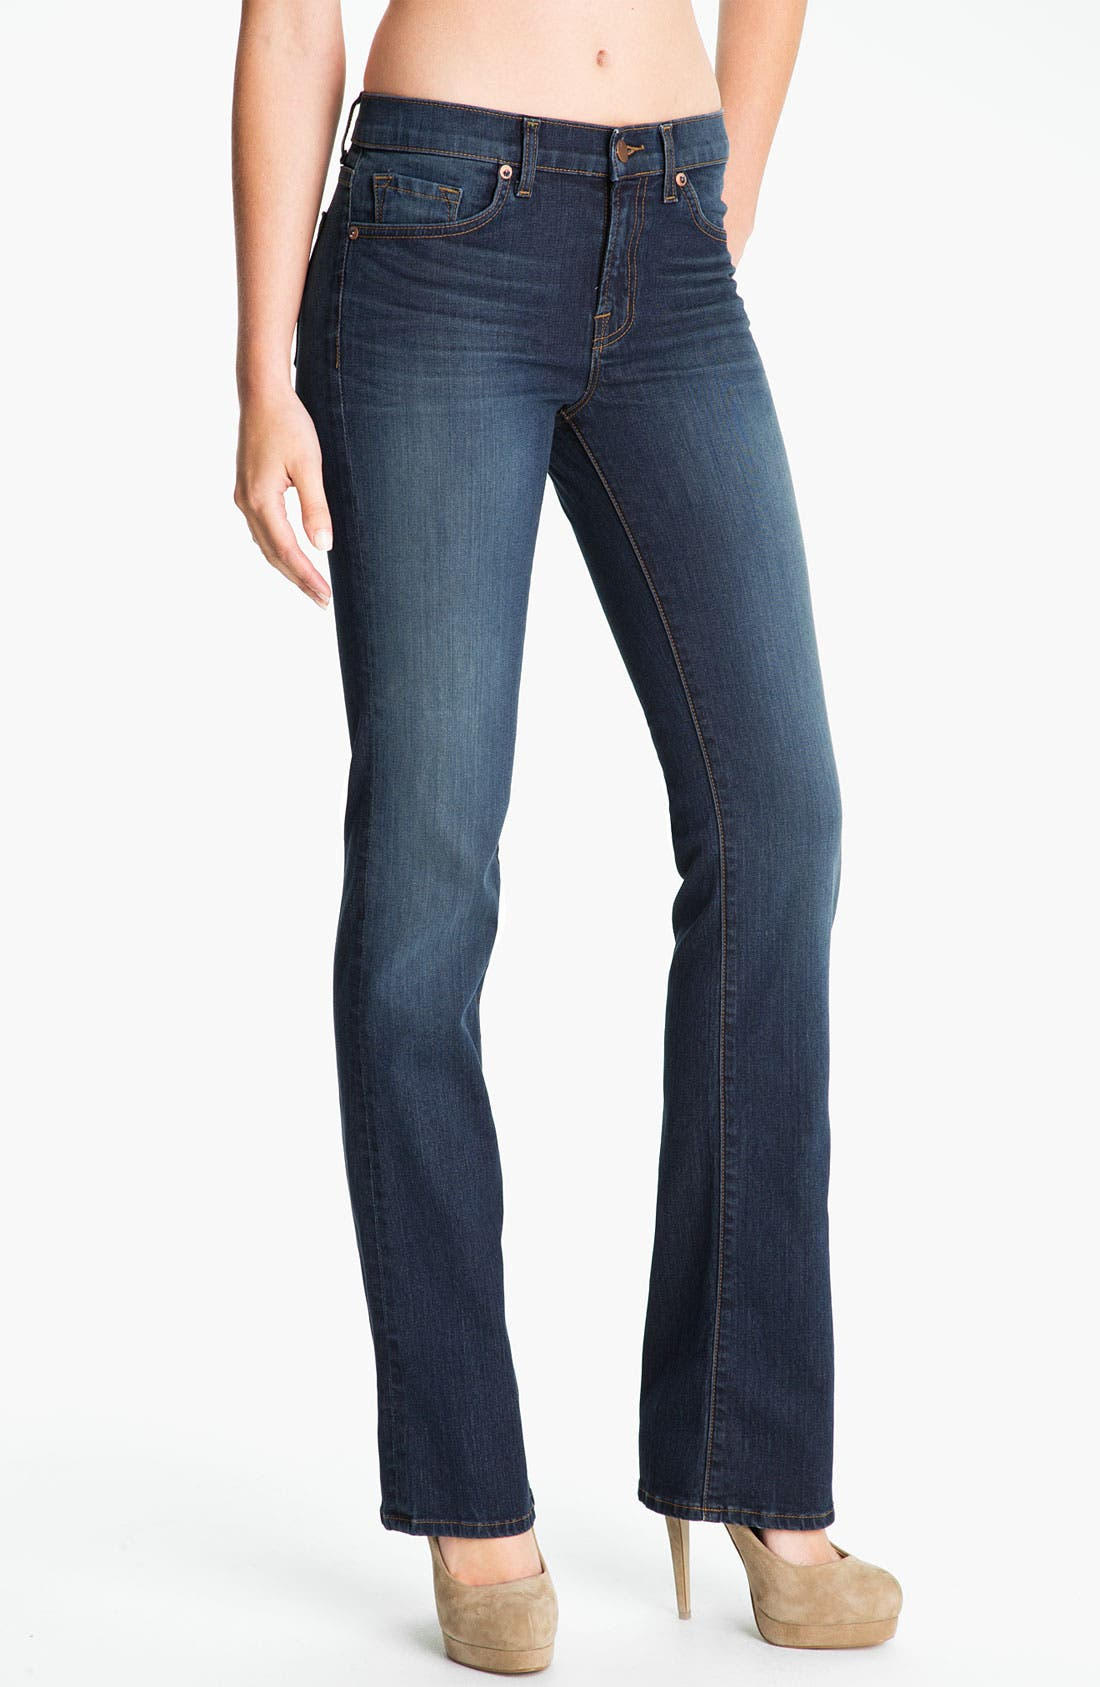 Alternate Image 1 Selected - J Brand Slim Bootcut Stretch Jeans (Classic Wash)